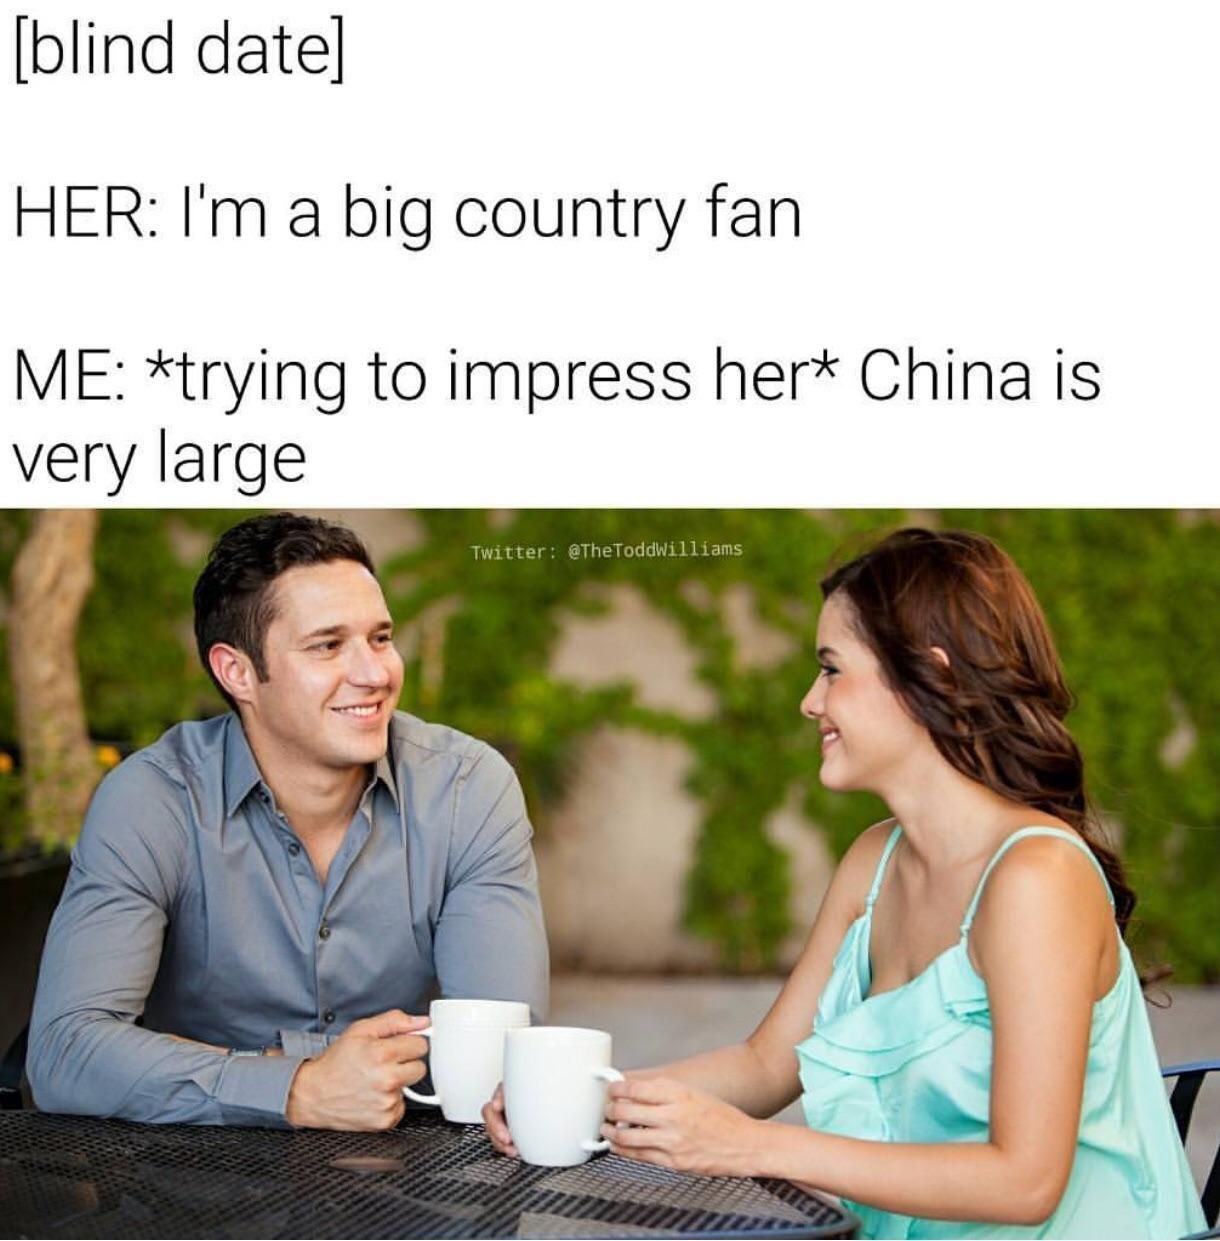 I'm a big country fan / China is very large   Guy Tries to Impress Girl